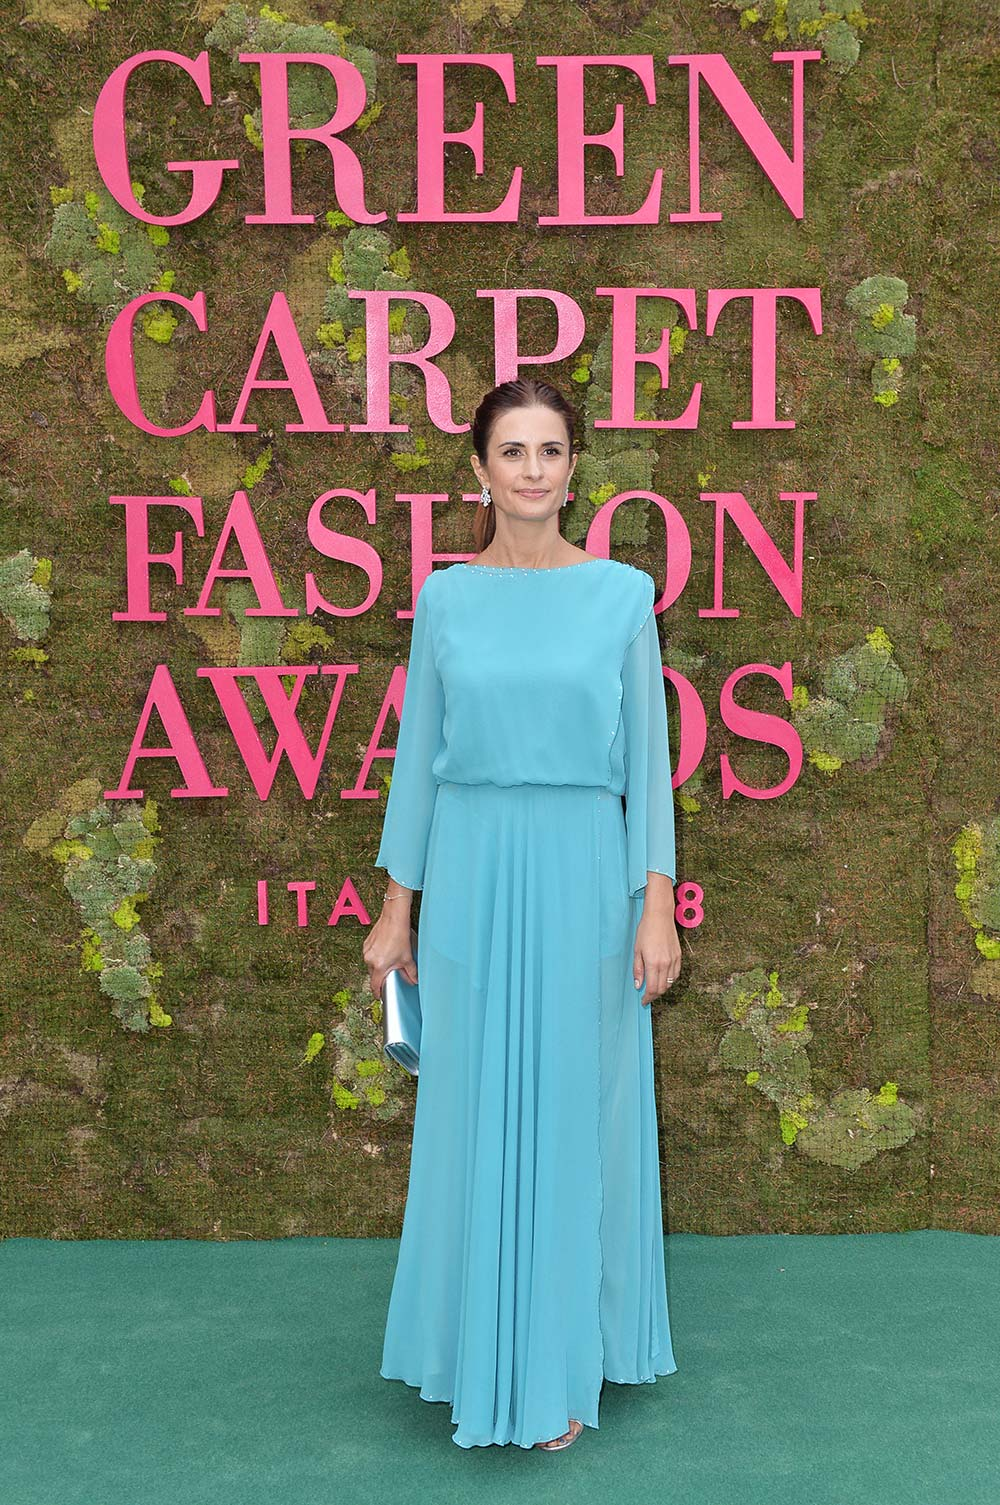 Green Carpet Fashion Awards 2018 - Livia Firth - Hair Massimo Serini - Makeup Emanuela Di Giammarco